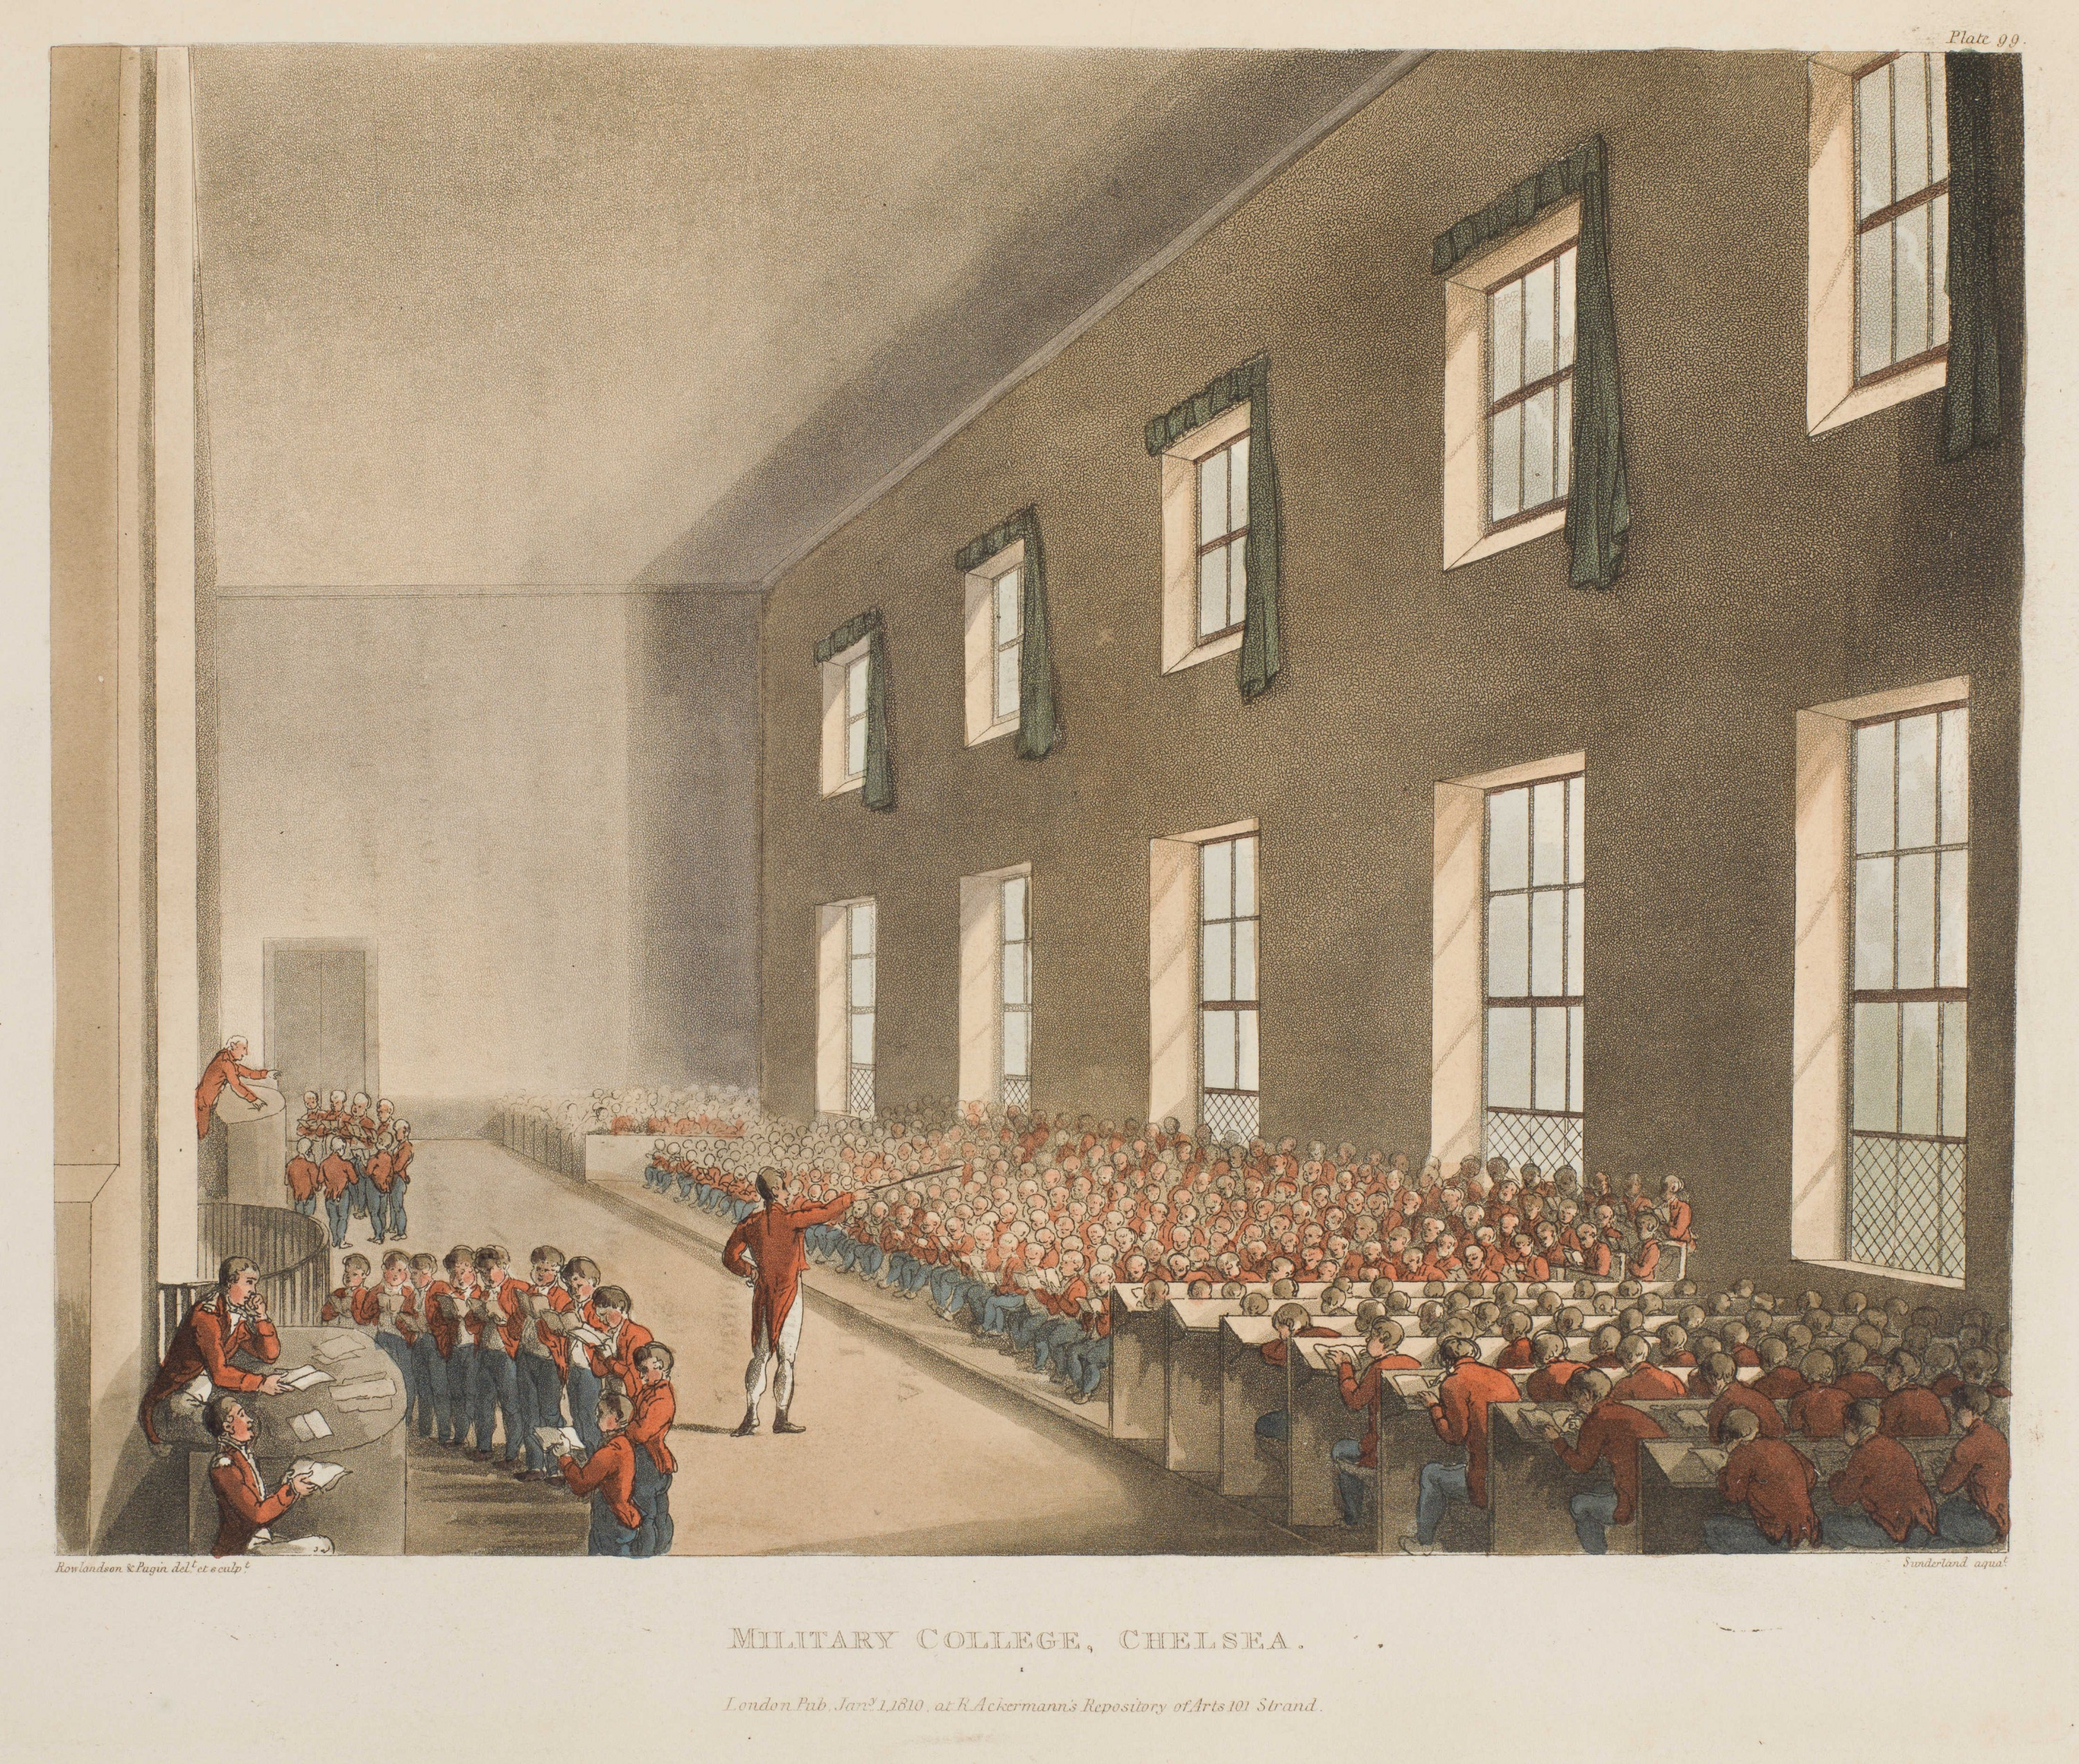 099 - Military College, Chelsea